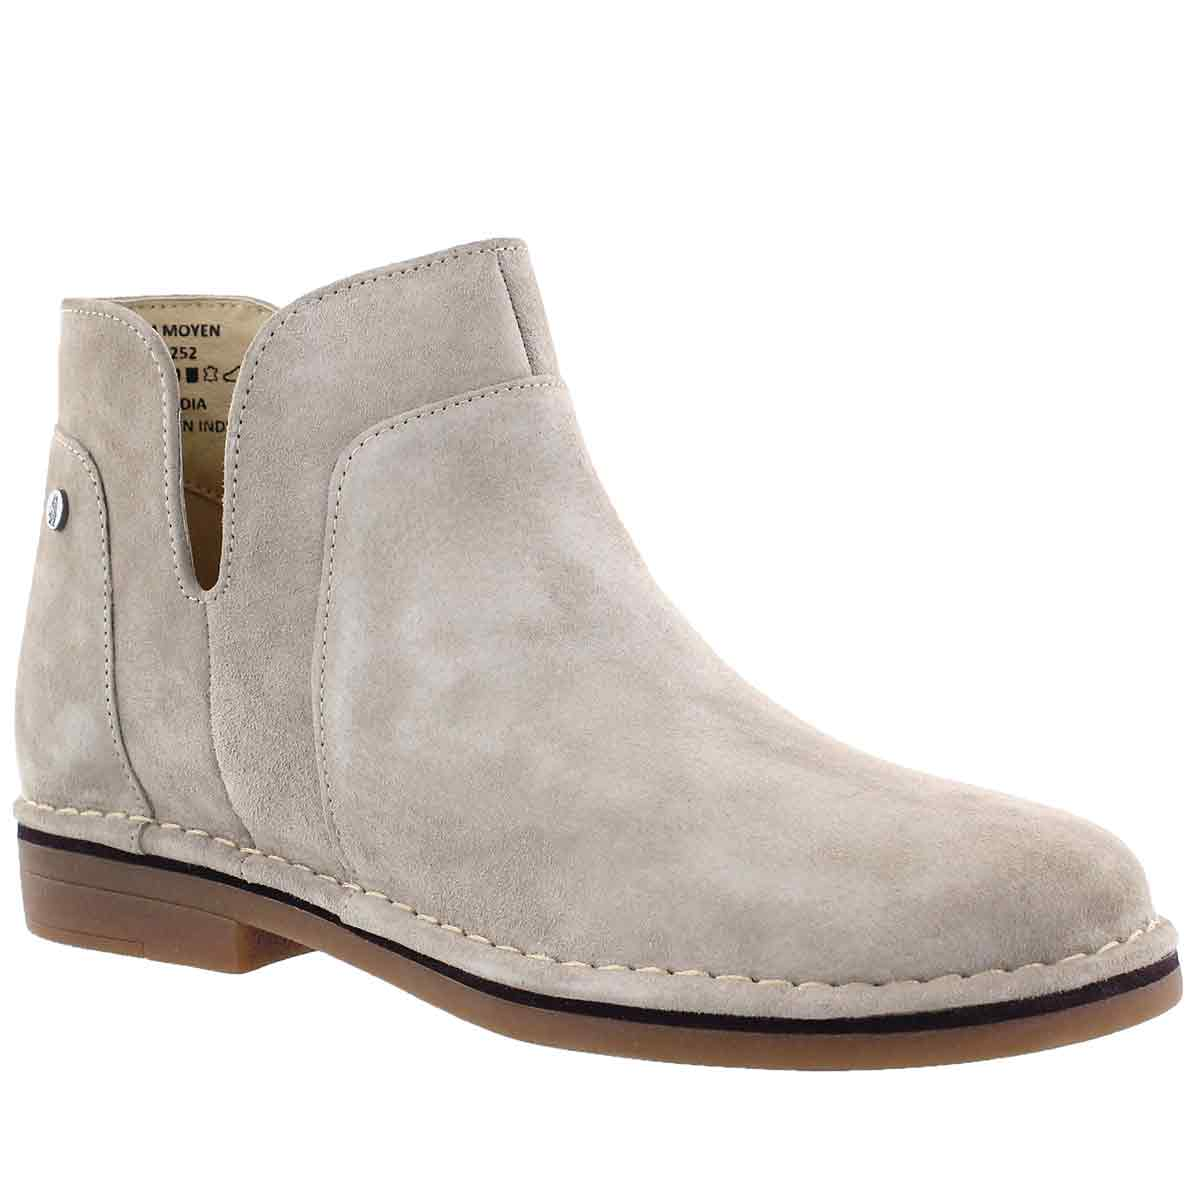 Women's CLAUDIA CATELYN taupe slip on boots